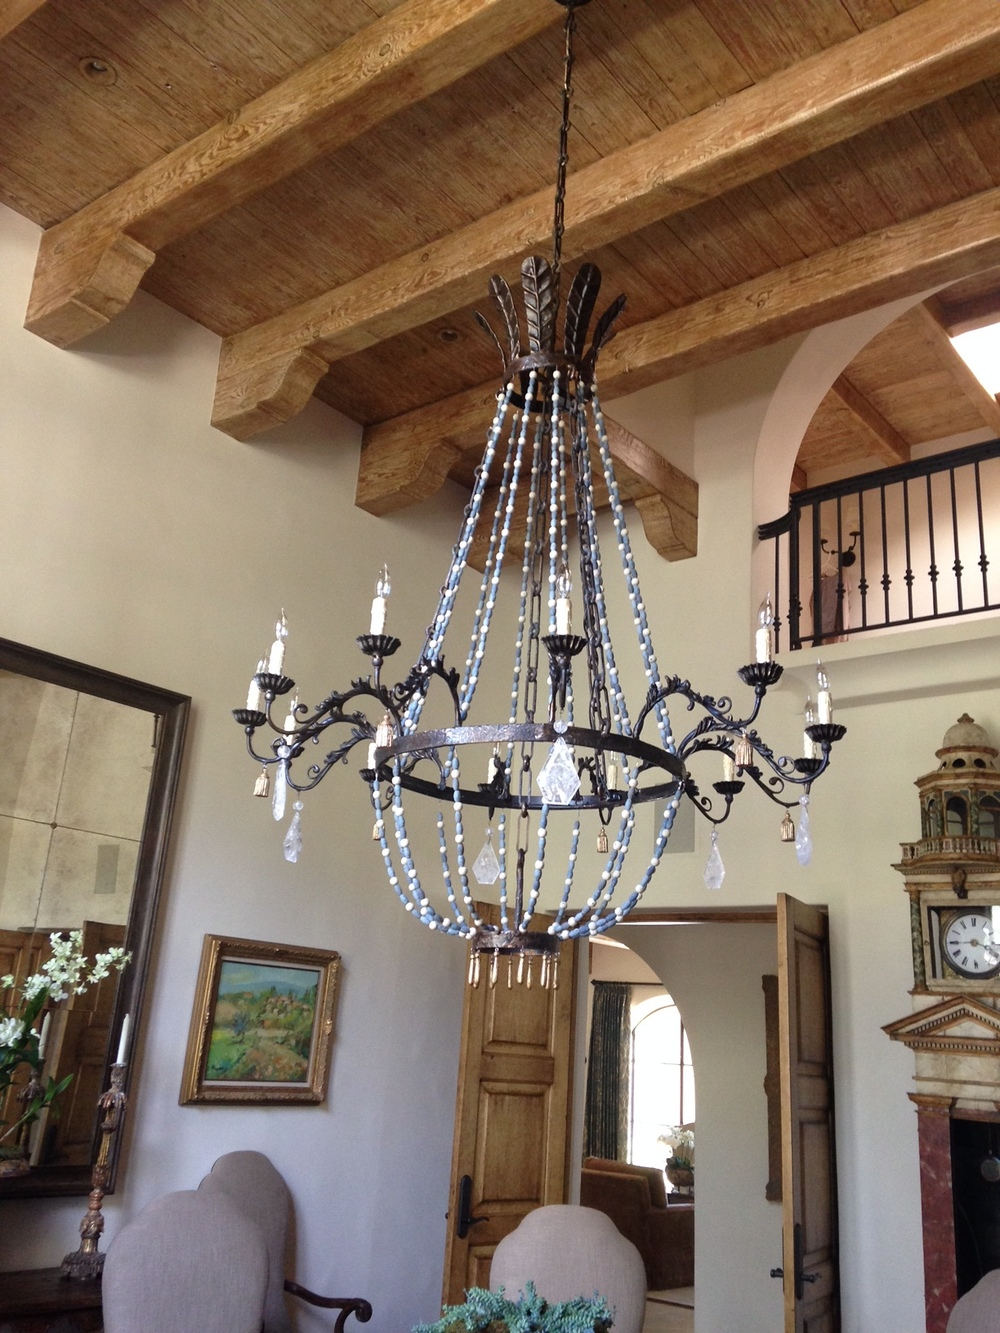 negresco_chandelier(2).JPG